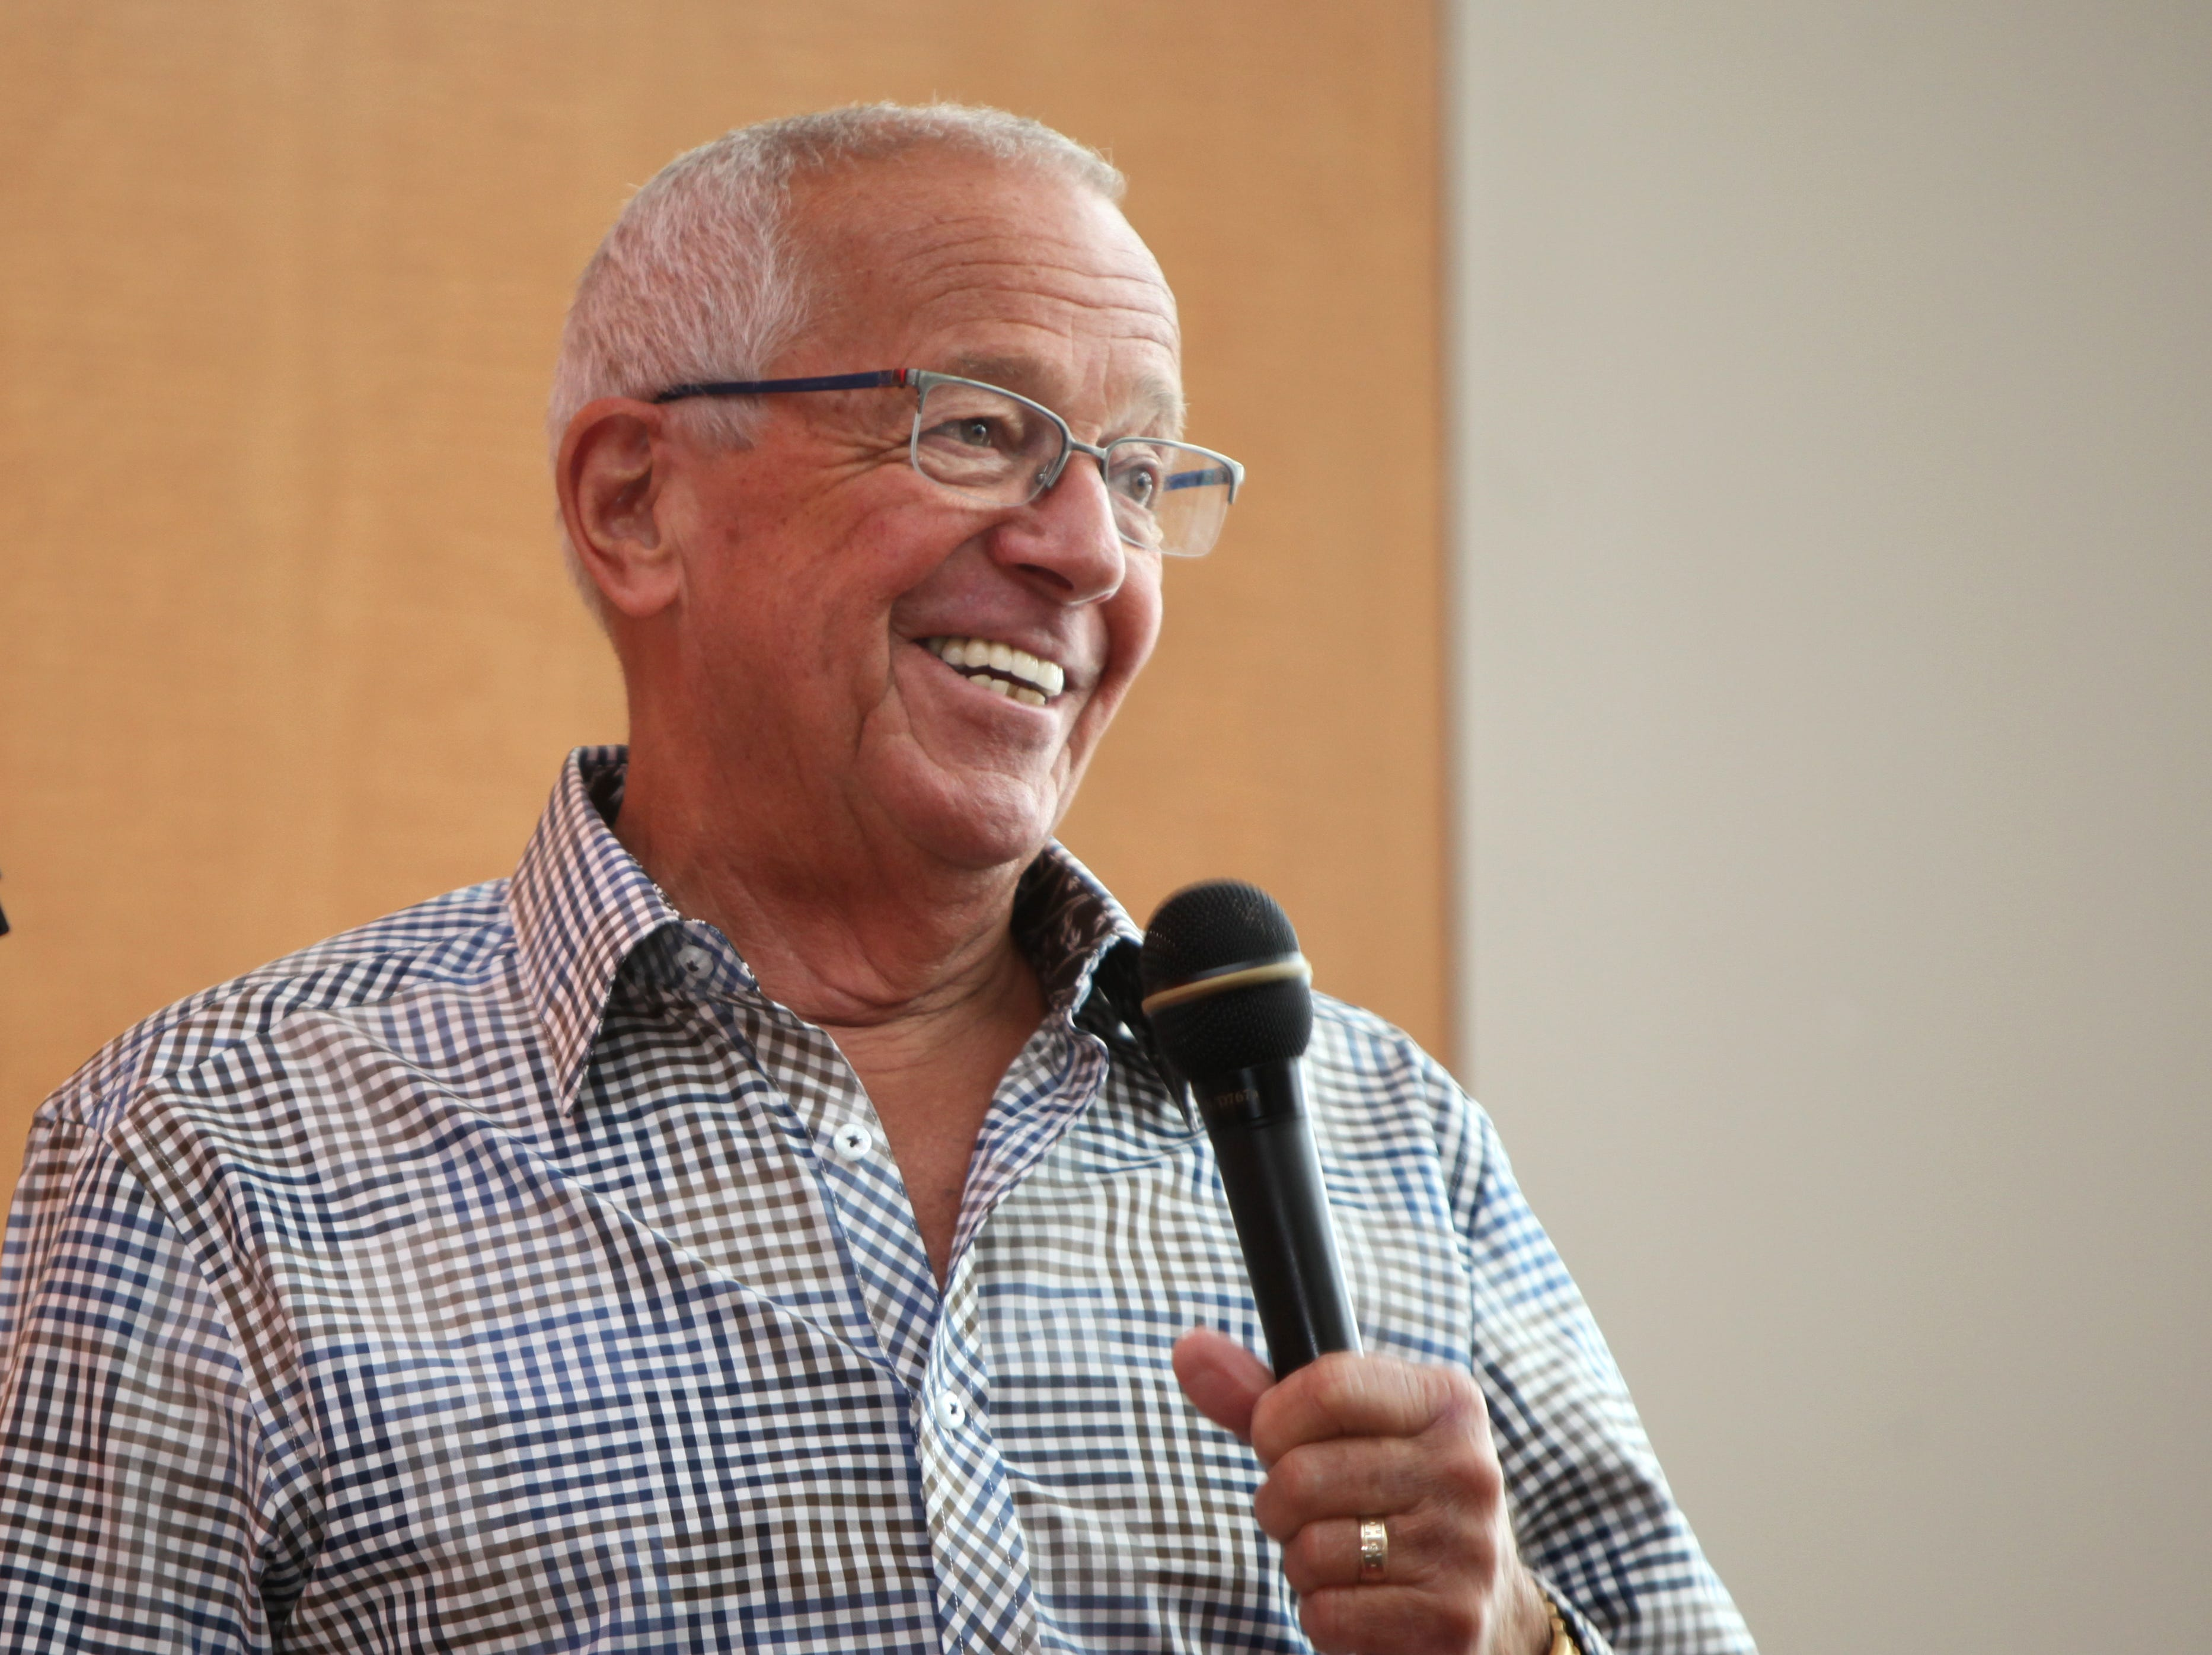 REDS CARAVAN QA Sun., January 25, 2015 Cincinnati Reds announcer Marty Brennaman responds to a fan during a question and answer session during the Select-A-Seat event at Great American Ball Park on Sunday, Jan. 25, 2015. The Enquirer/Cameron Knight